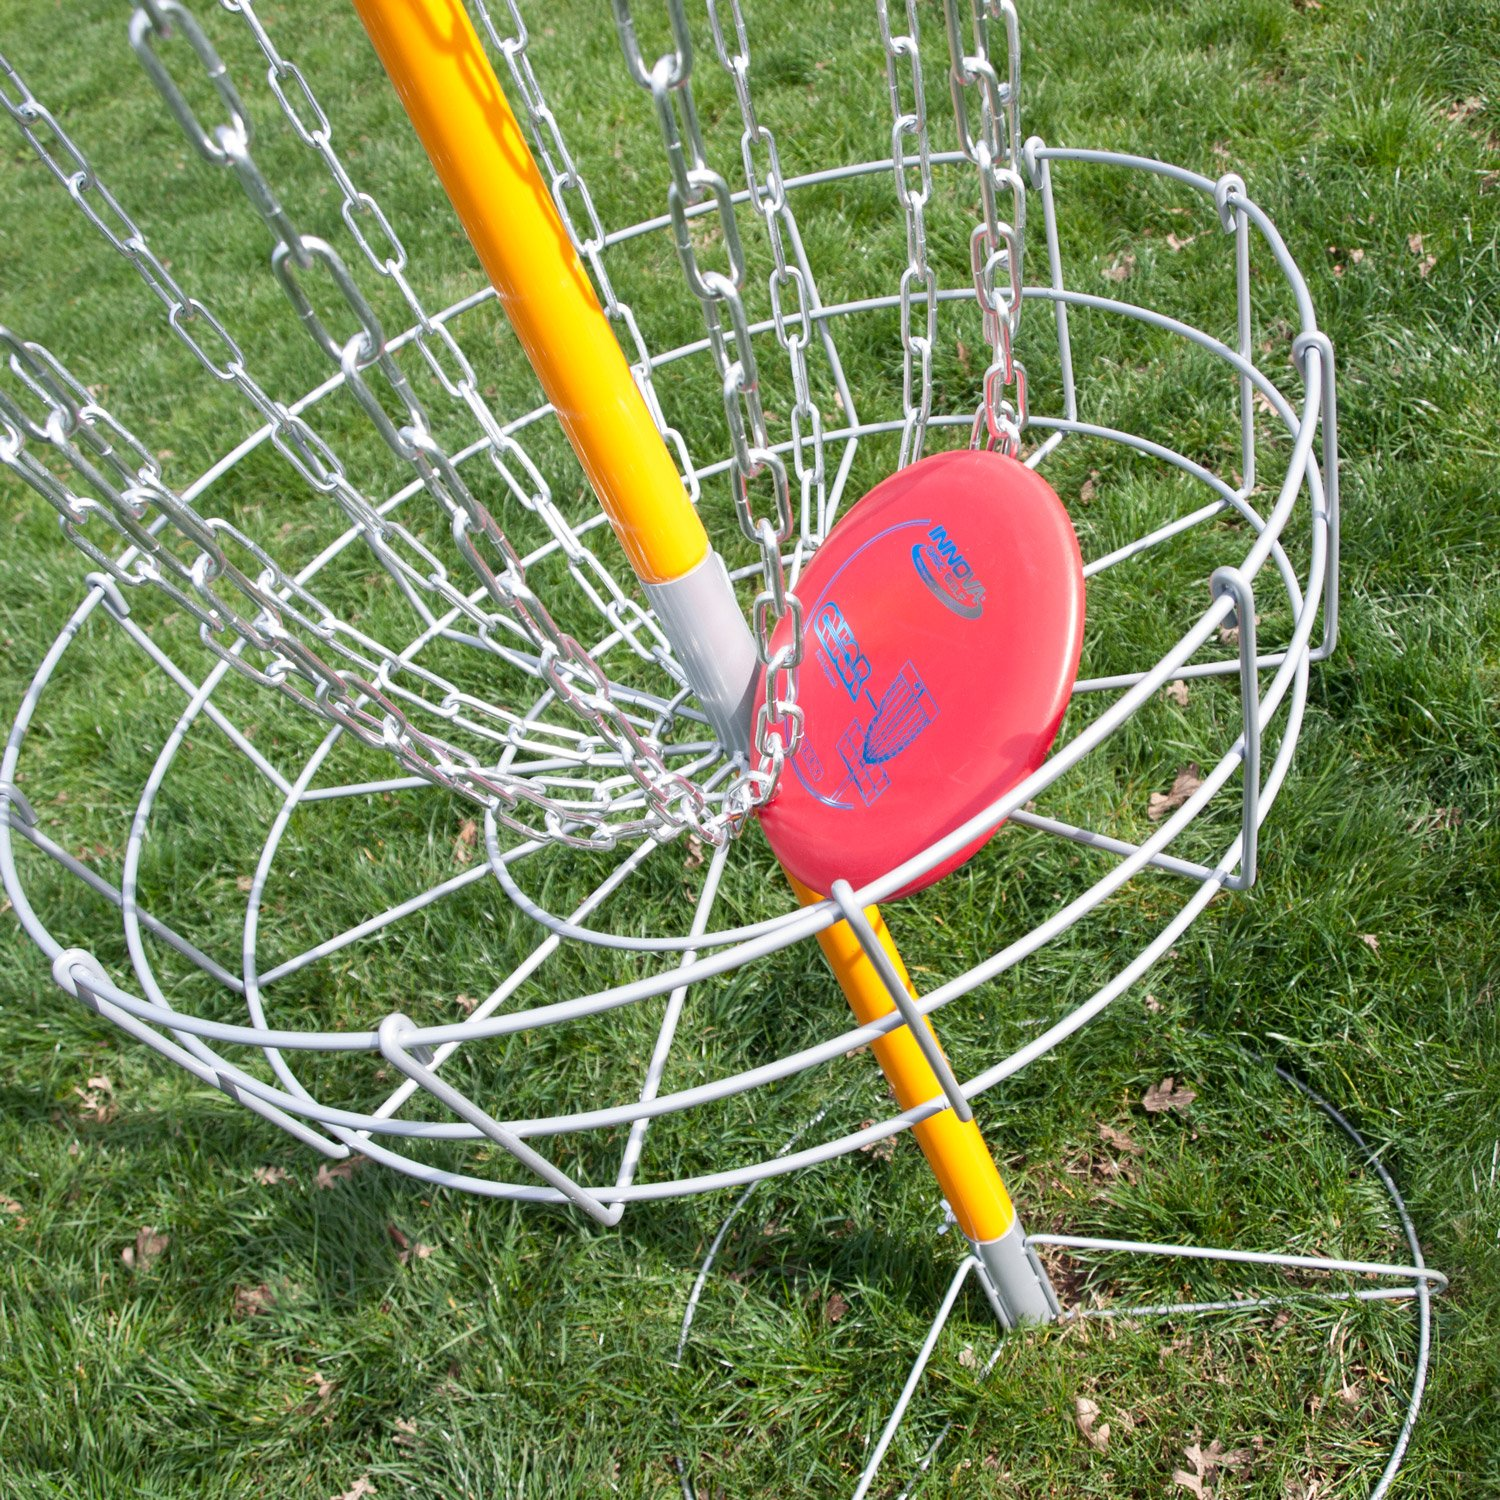 Driftsun Sports Portable Disc Golf Basket Goal, Lightweight Frisbee Target, Steel by Driftsun